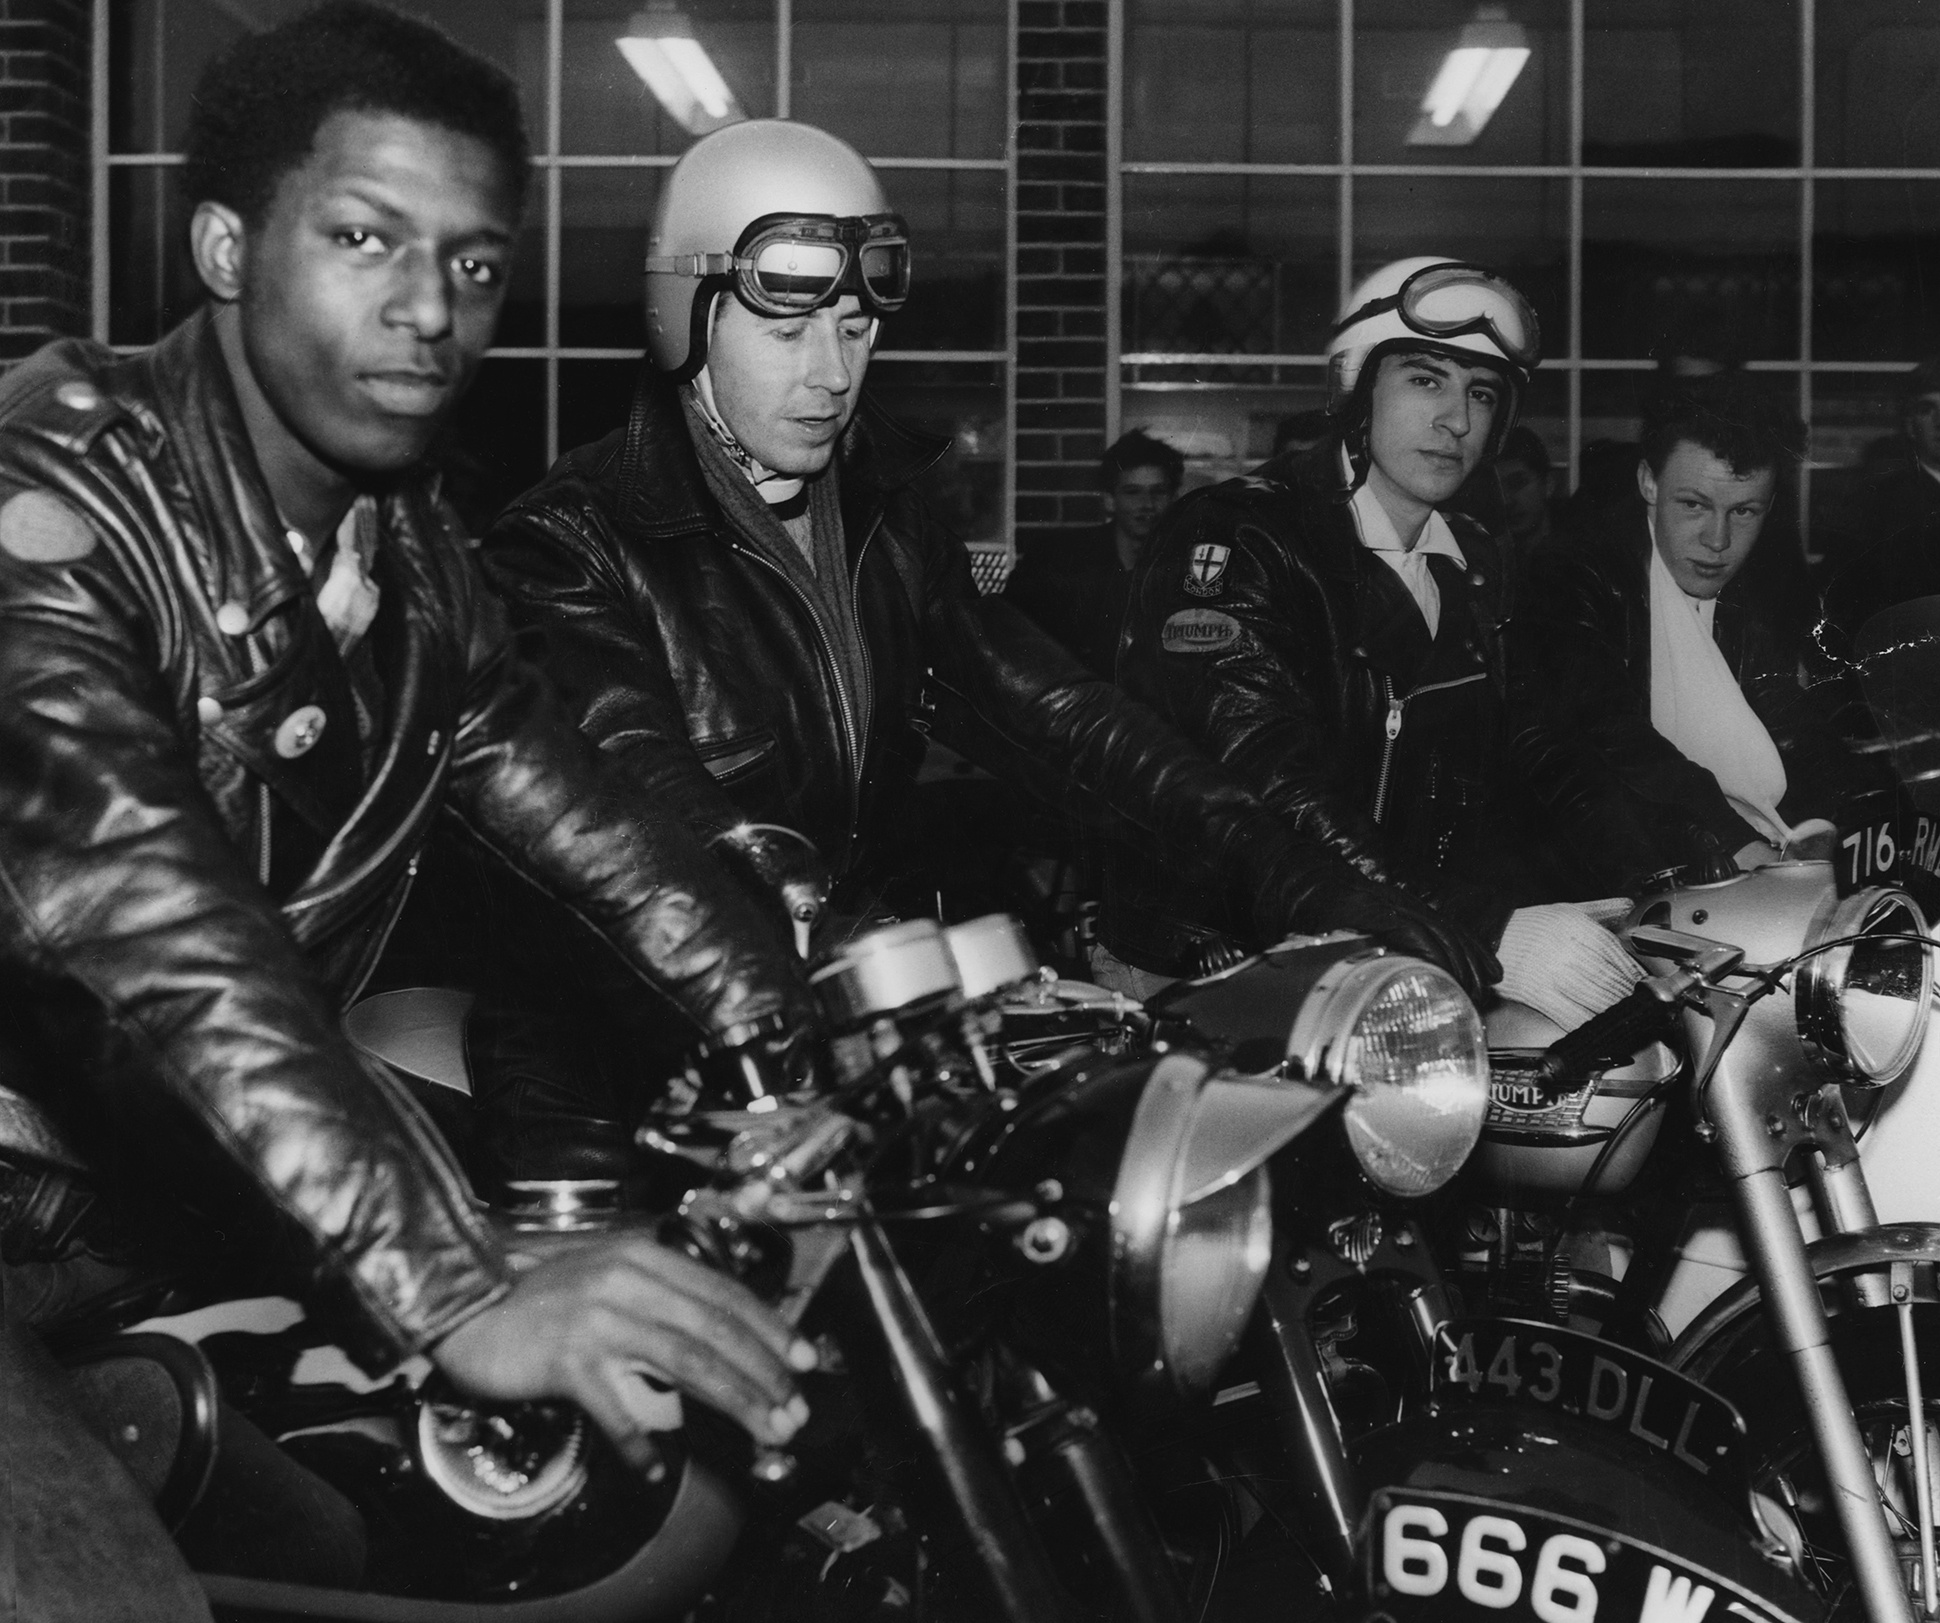 Group of bikers and rockers in leather jackets on the motorbikes at the Ace Cafe, London, 1960s from the 59 Club Archive